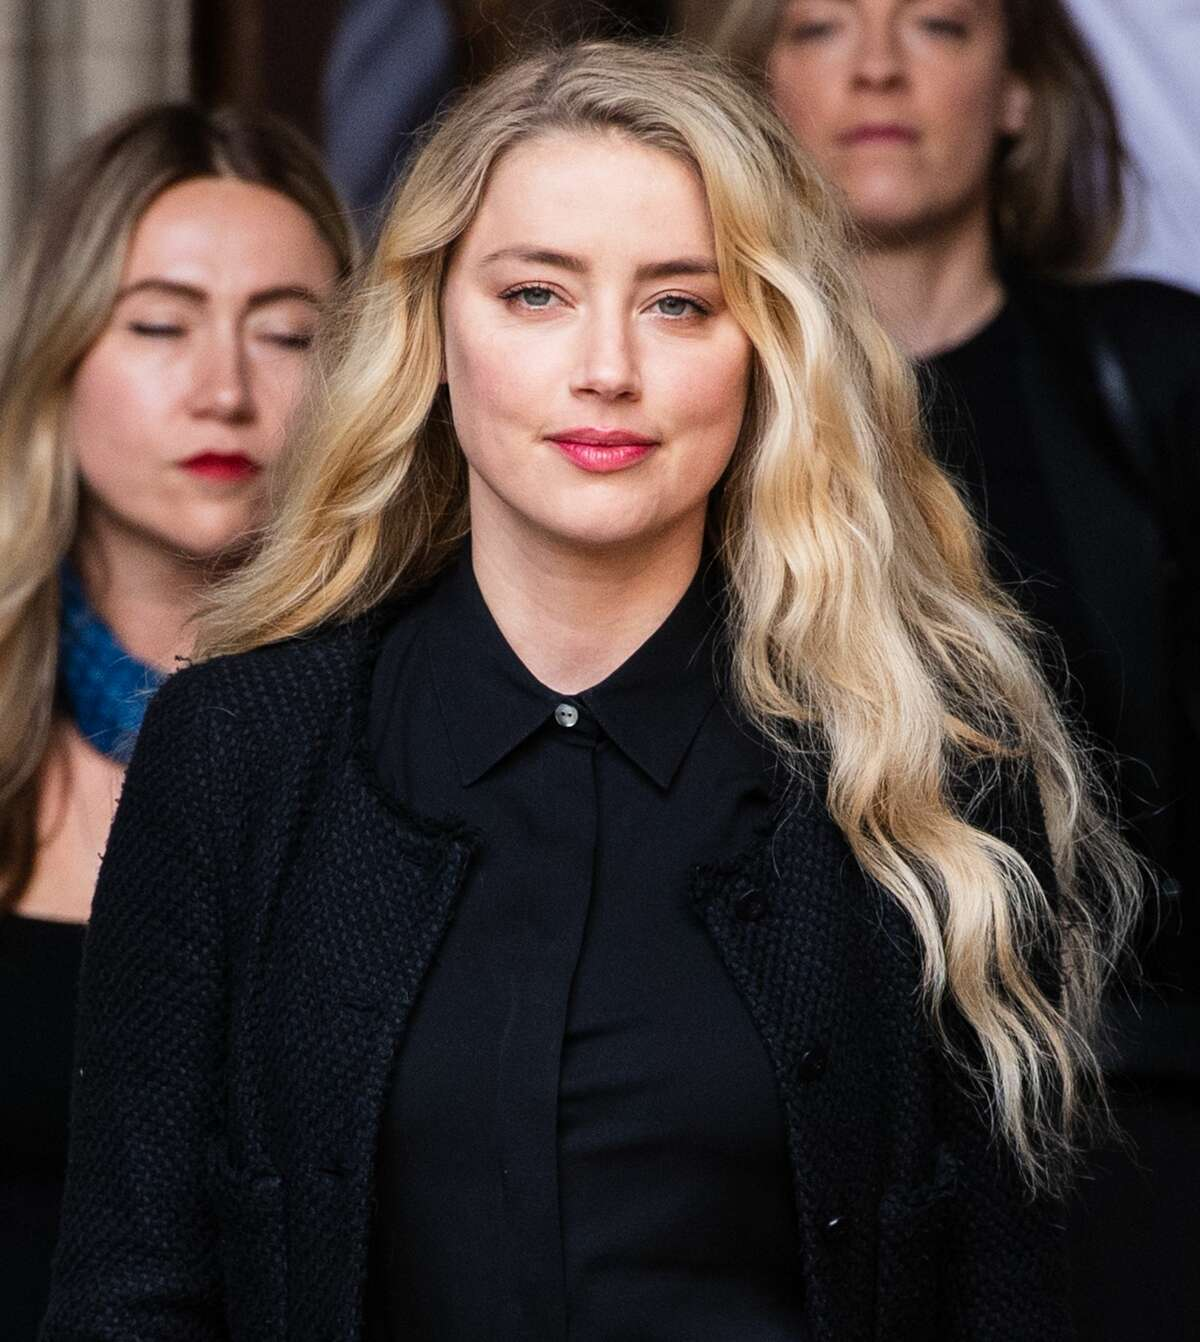 Texas native Amber Heard is among the celebrities who have teamed up with Habitat for Humanity Los Angeles to launch the organization's #Hammertime social media campaign.